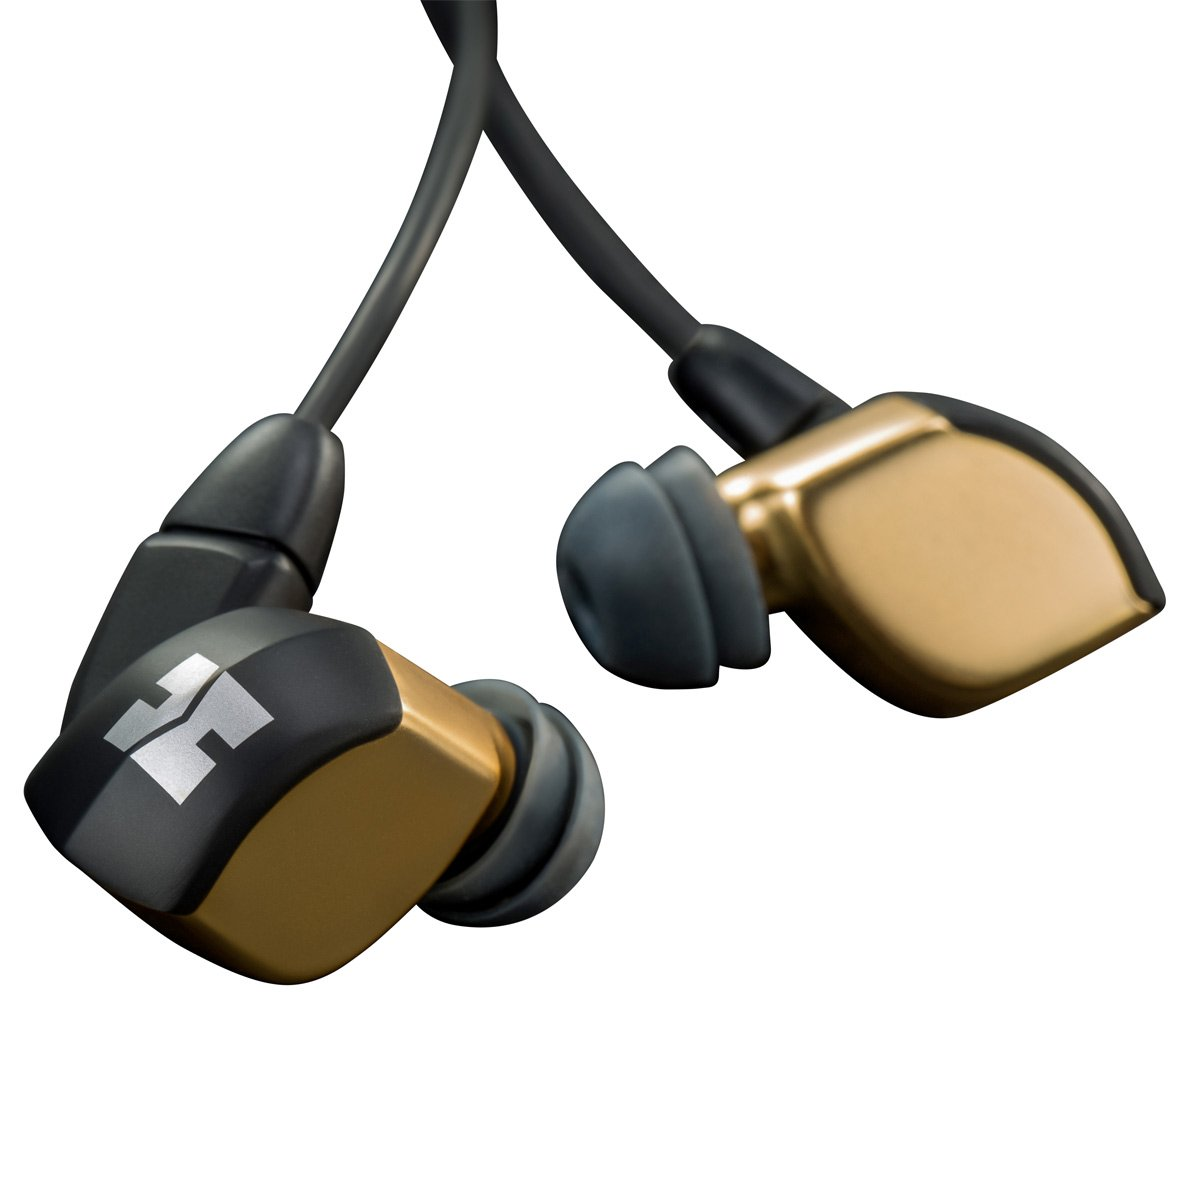 HifiMan Electronics RE2000 In-Ear Headphones (Gold/Black) by HiFiMAn Electronics